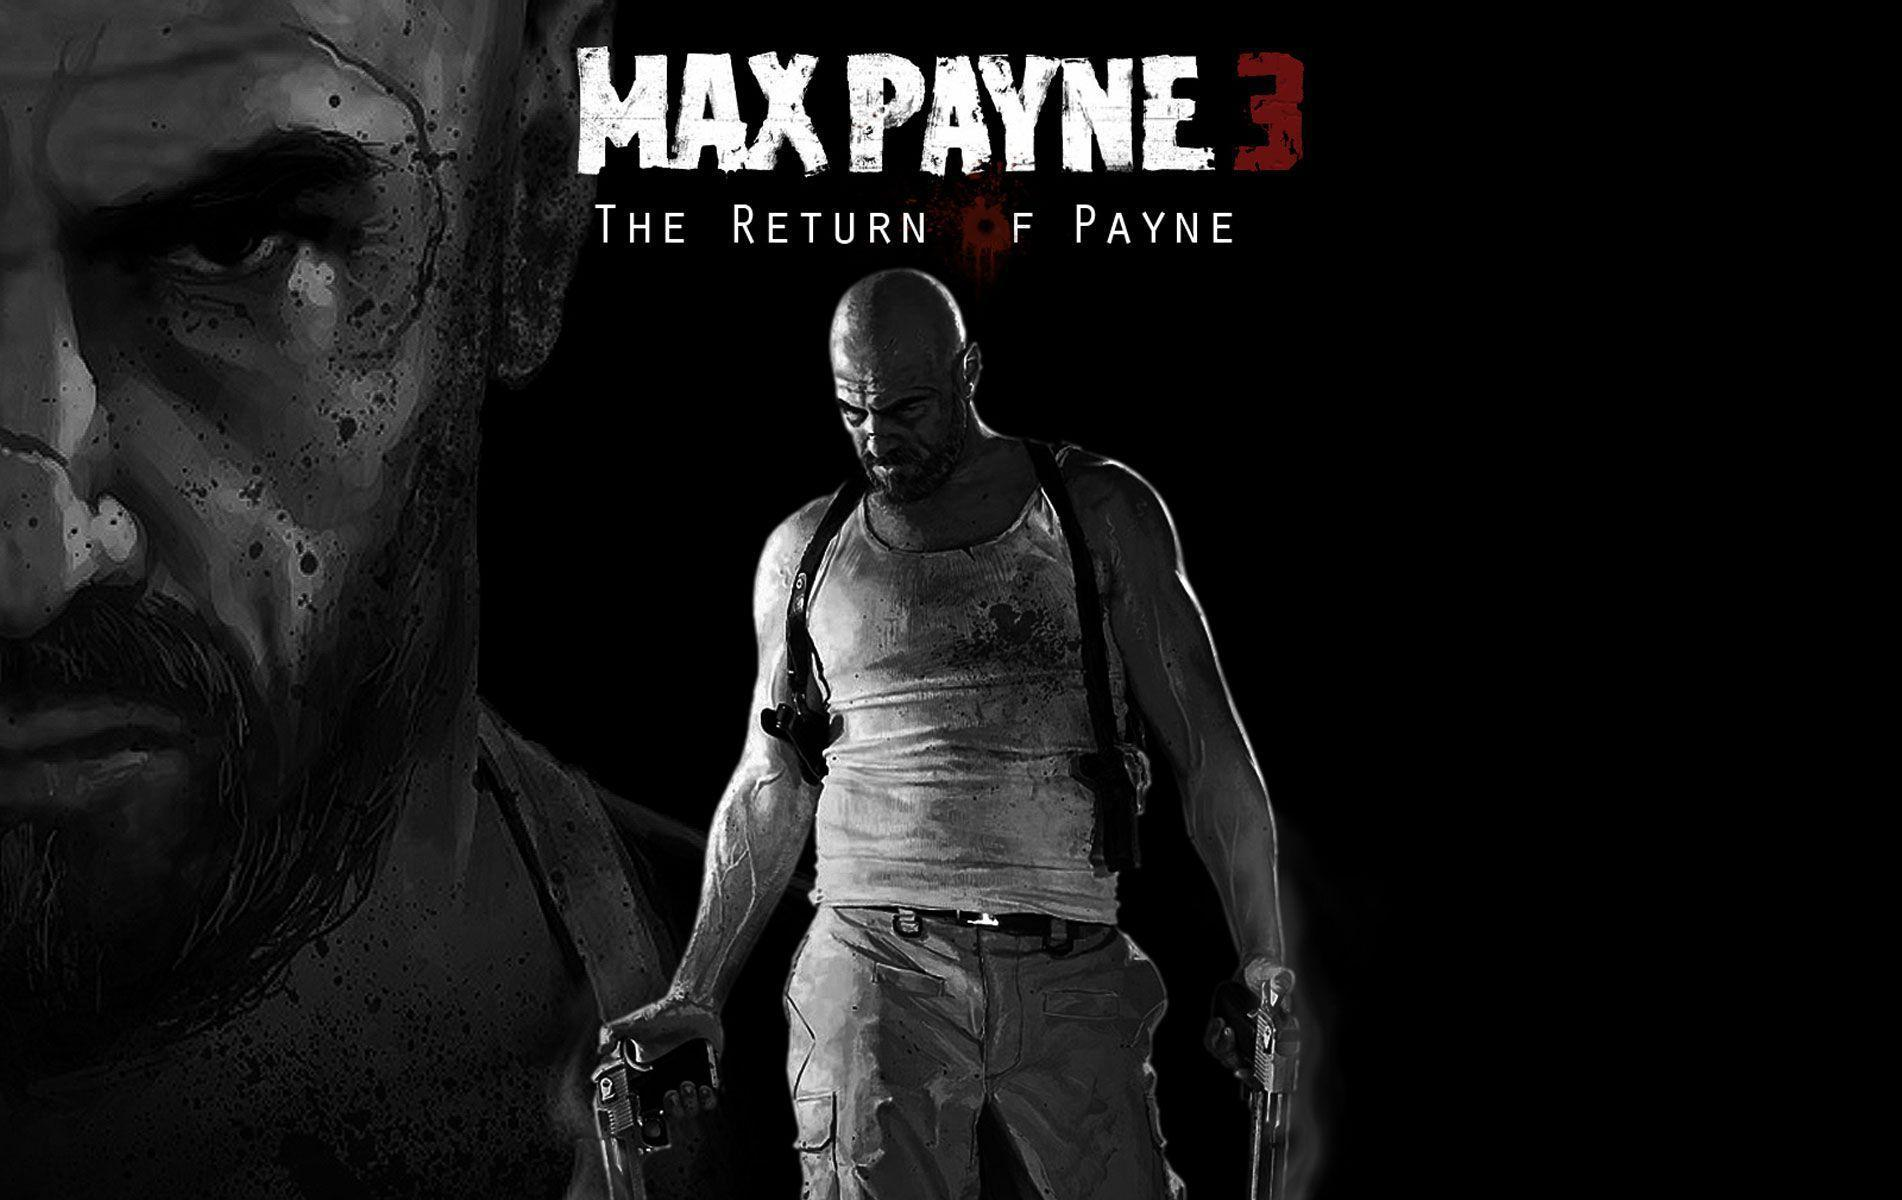 Max Payne Wallpapers 1902x1200